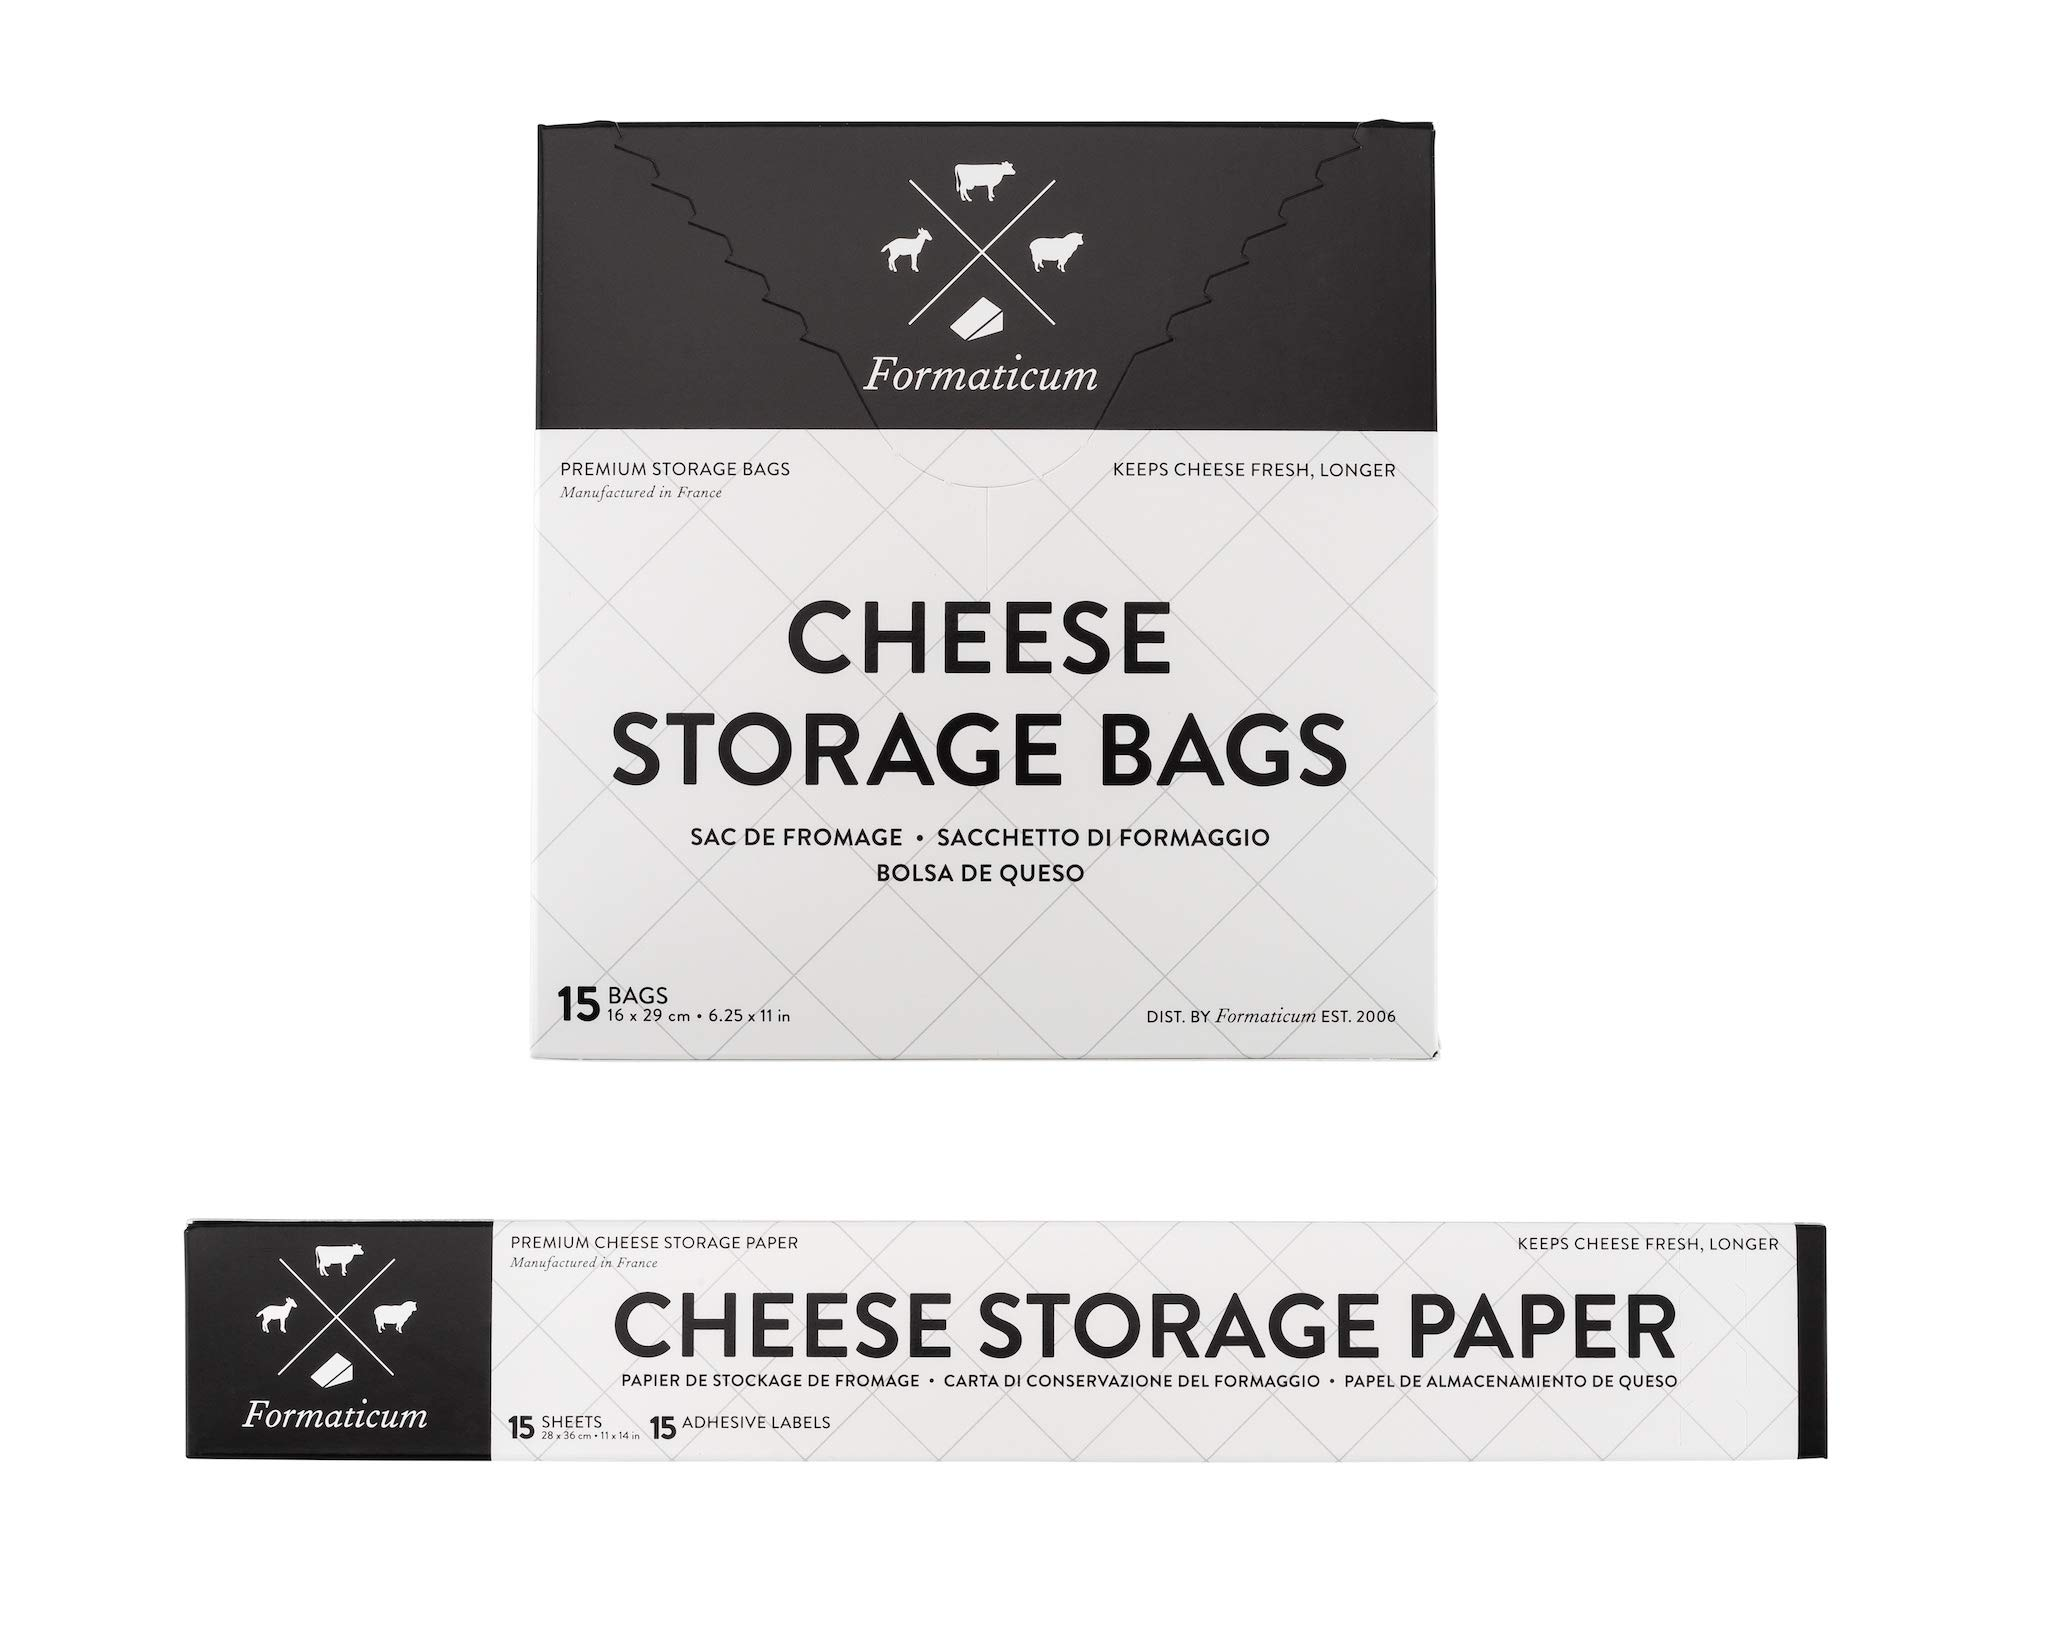 Formaticum Cheese Storage Bags, Wax-Coated Cheese Storage Paper, and Adhesive Labels, 15 Each by Formaticum